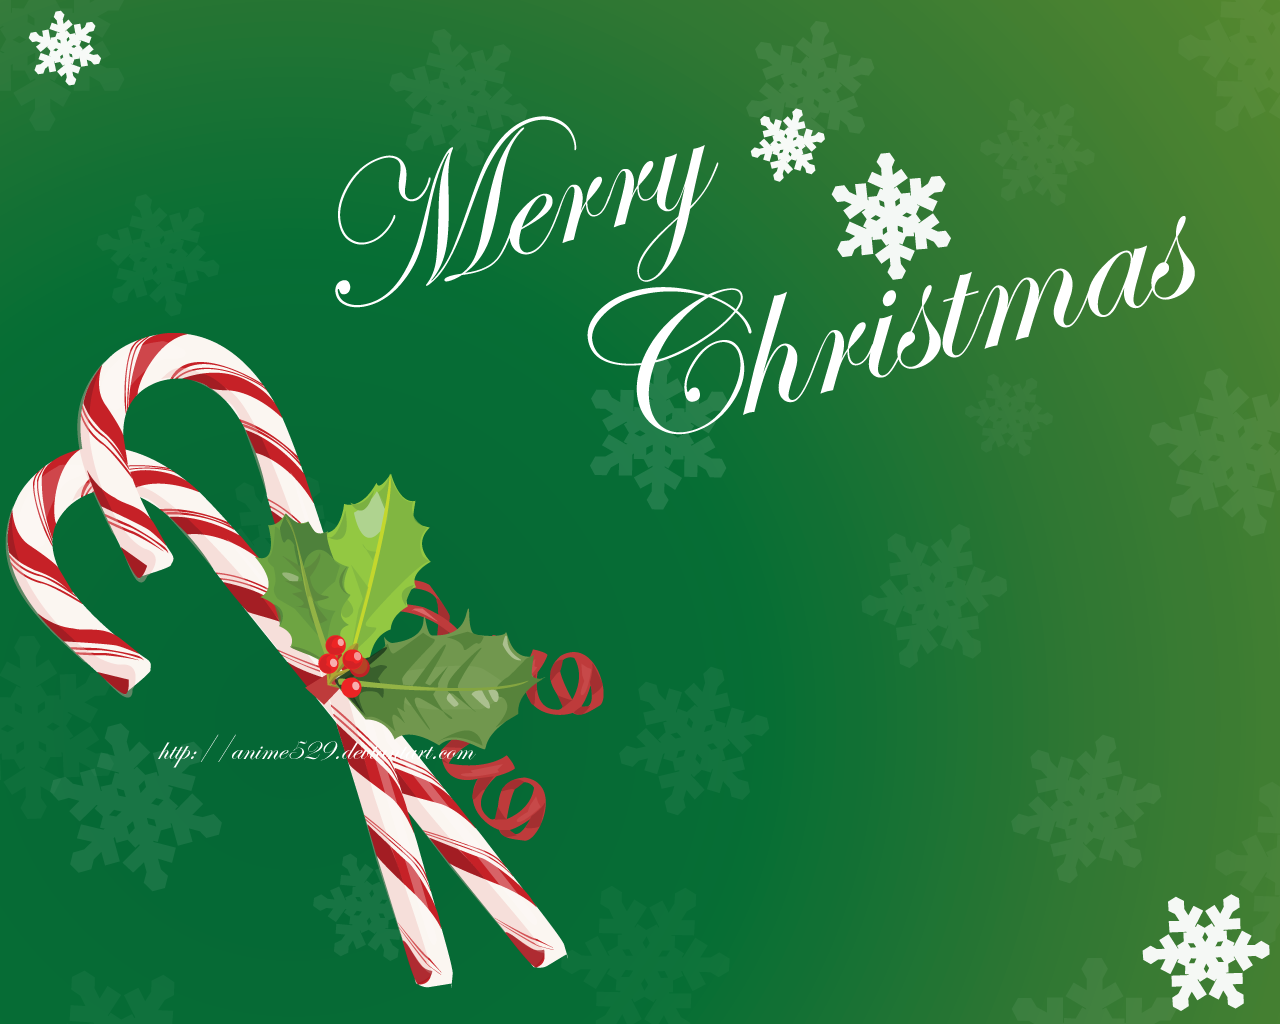 Candy Canes Images Merry Christmas HD Wallpaper And Background Photos